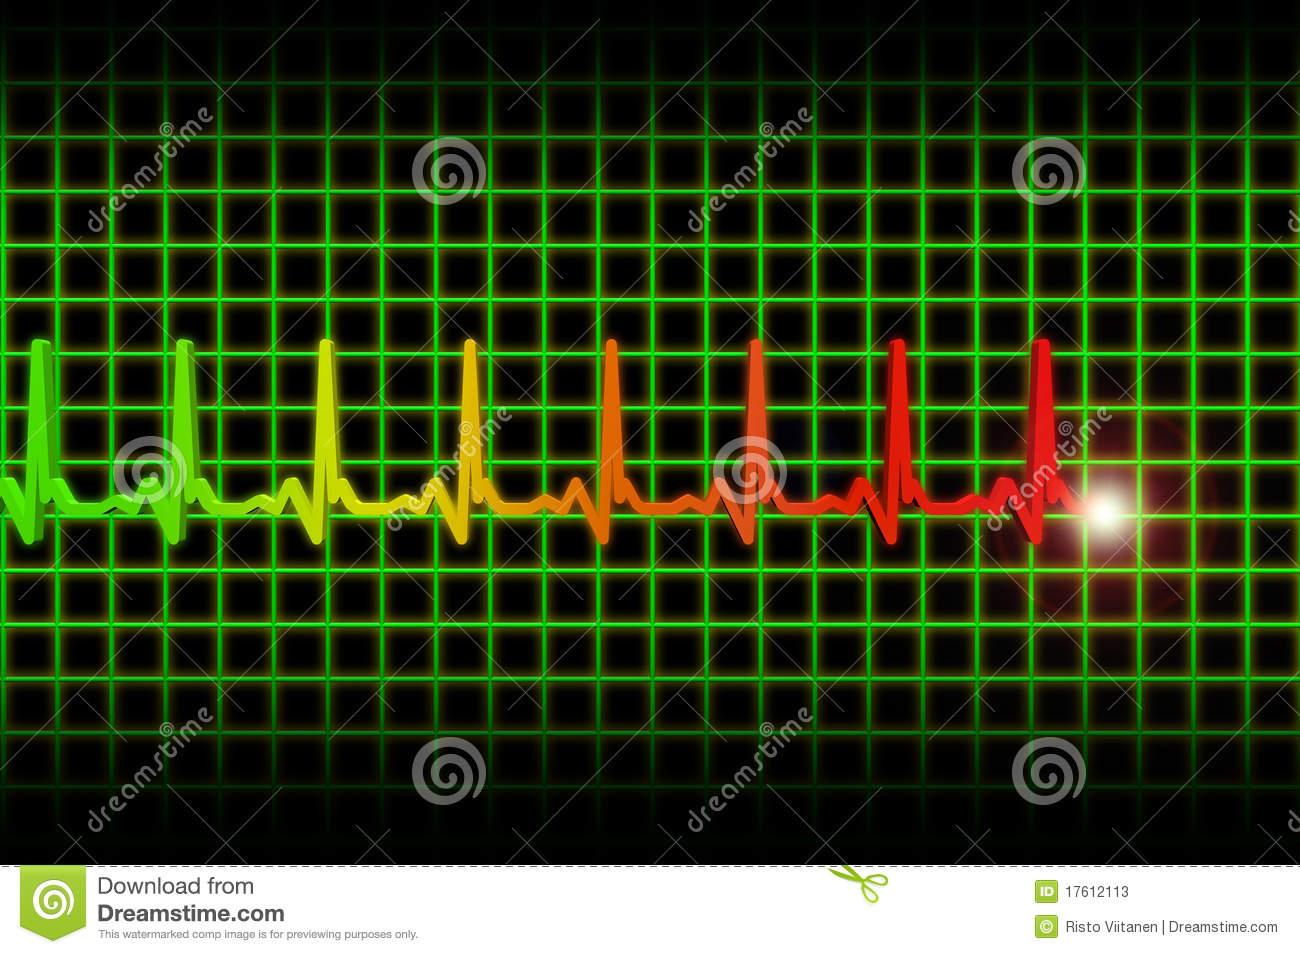 heart beat diagram 2009 ford ranger wiring ekg ecg pulse header stock illustration